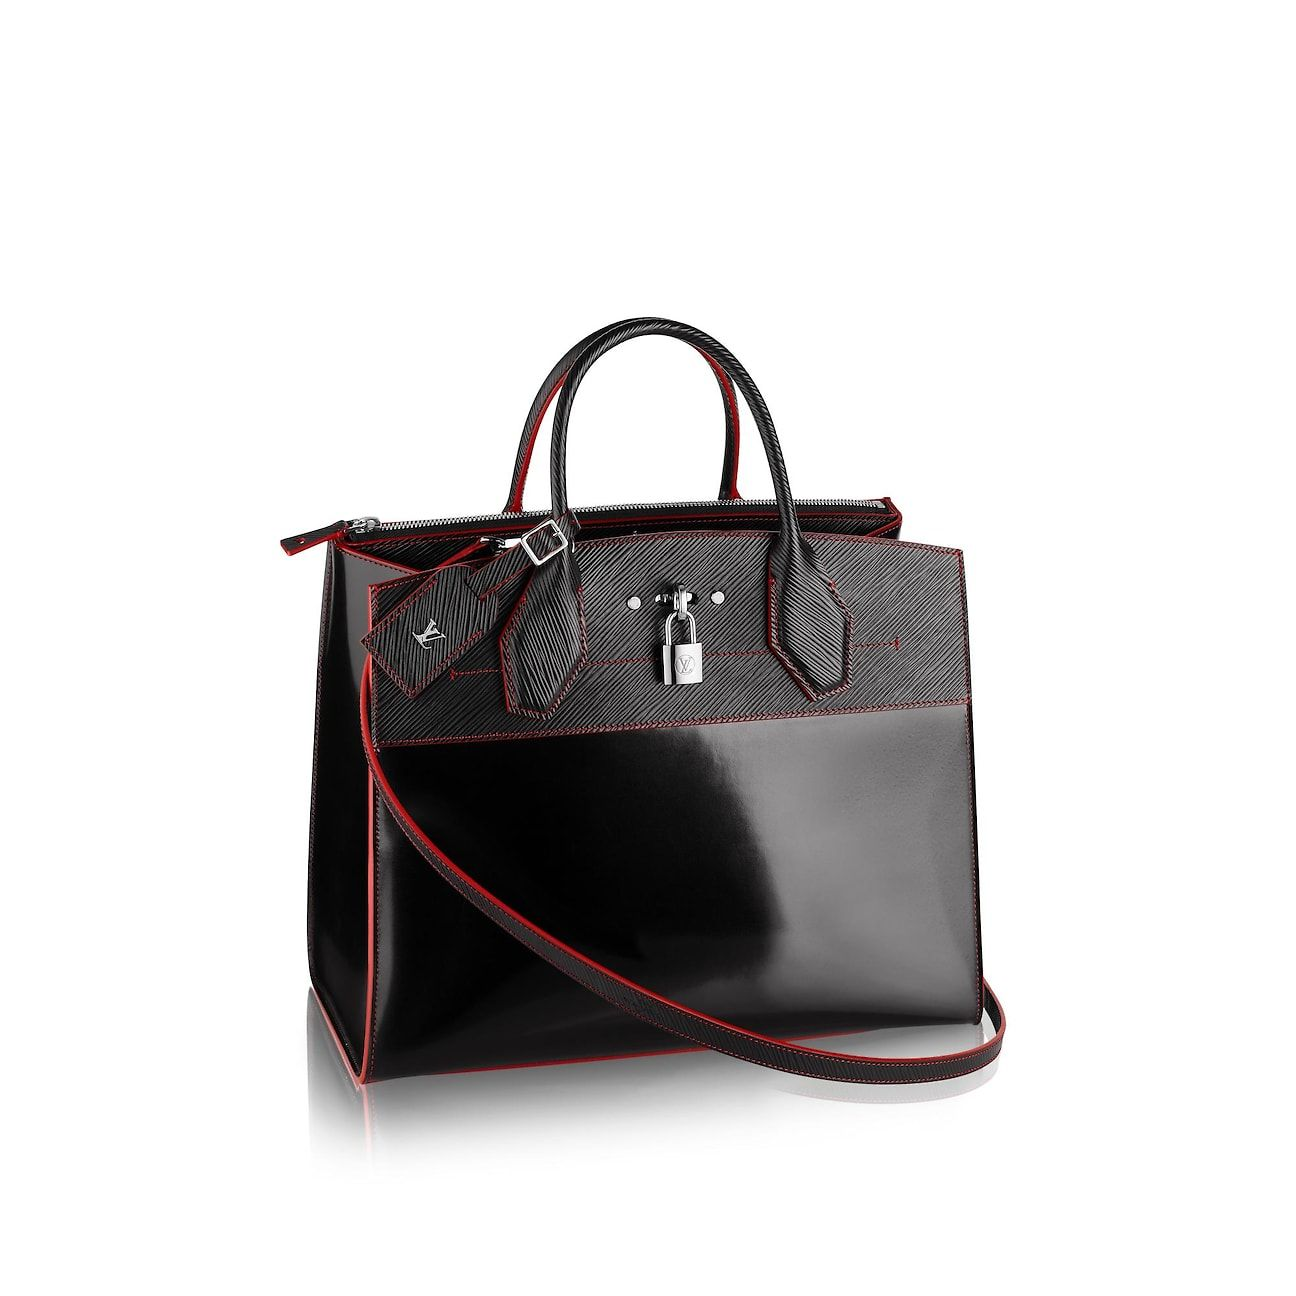 b35cfeb359ec City Steamer PM Other leathers in Women s Handbags Top Handles collections  by Louis Vuitton